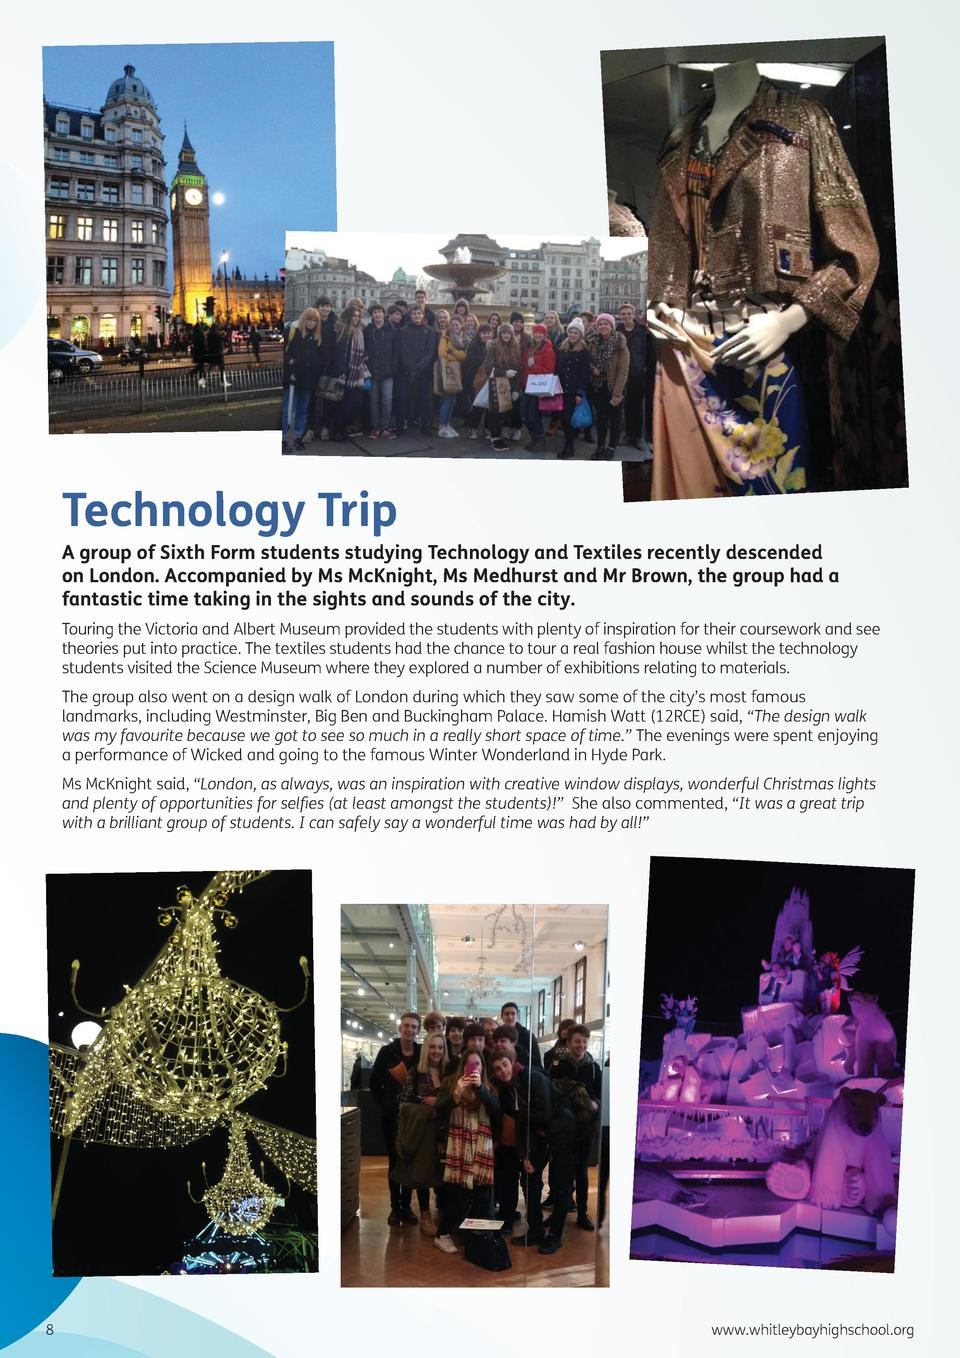 Technology Trip  A group of Sixth Form students studying Technology and Textiles recently descended on London. Accompanied...